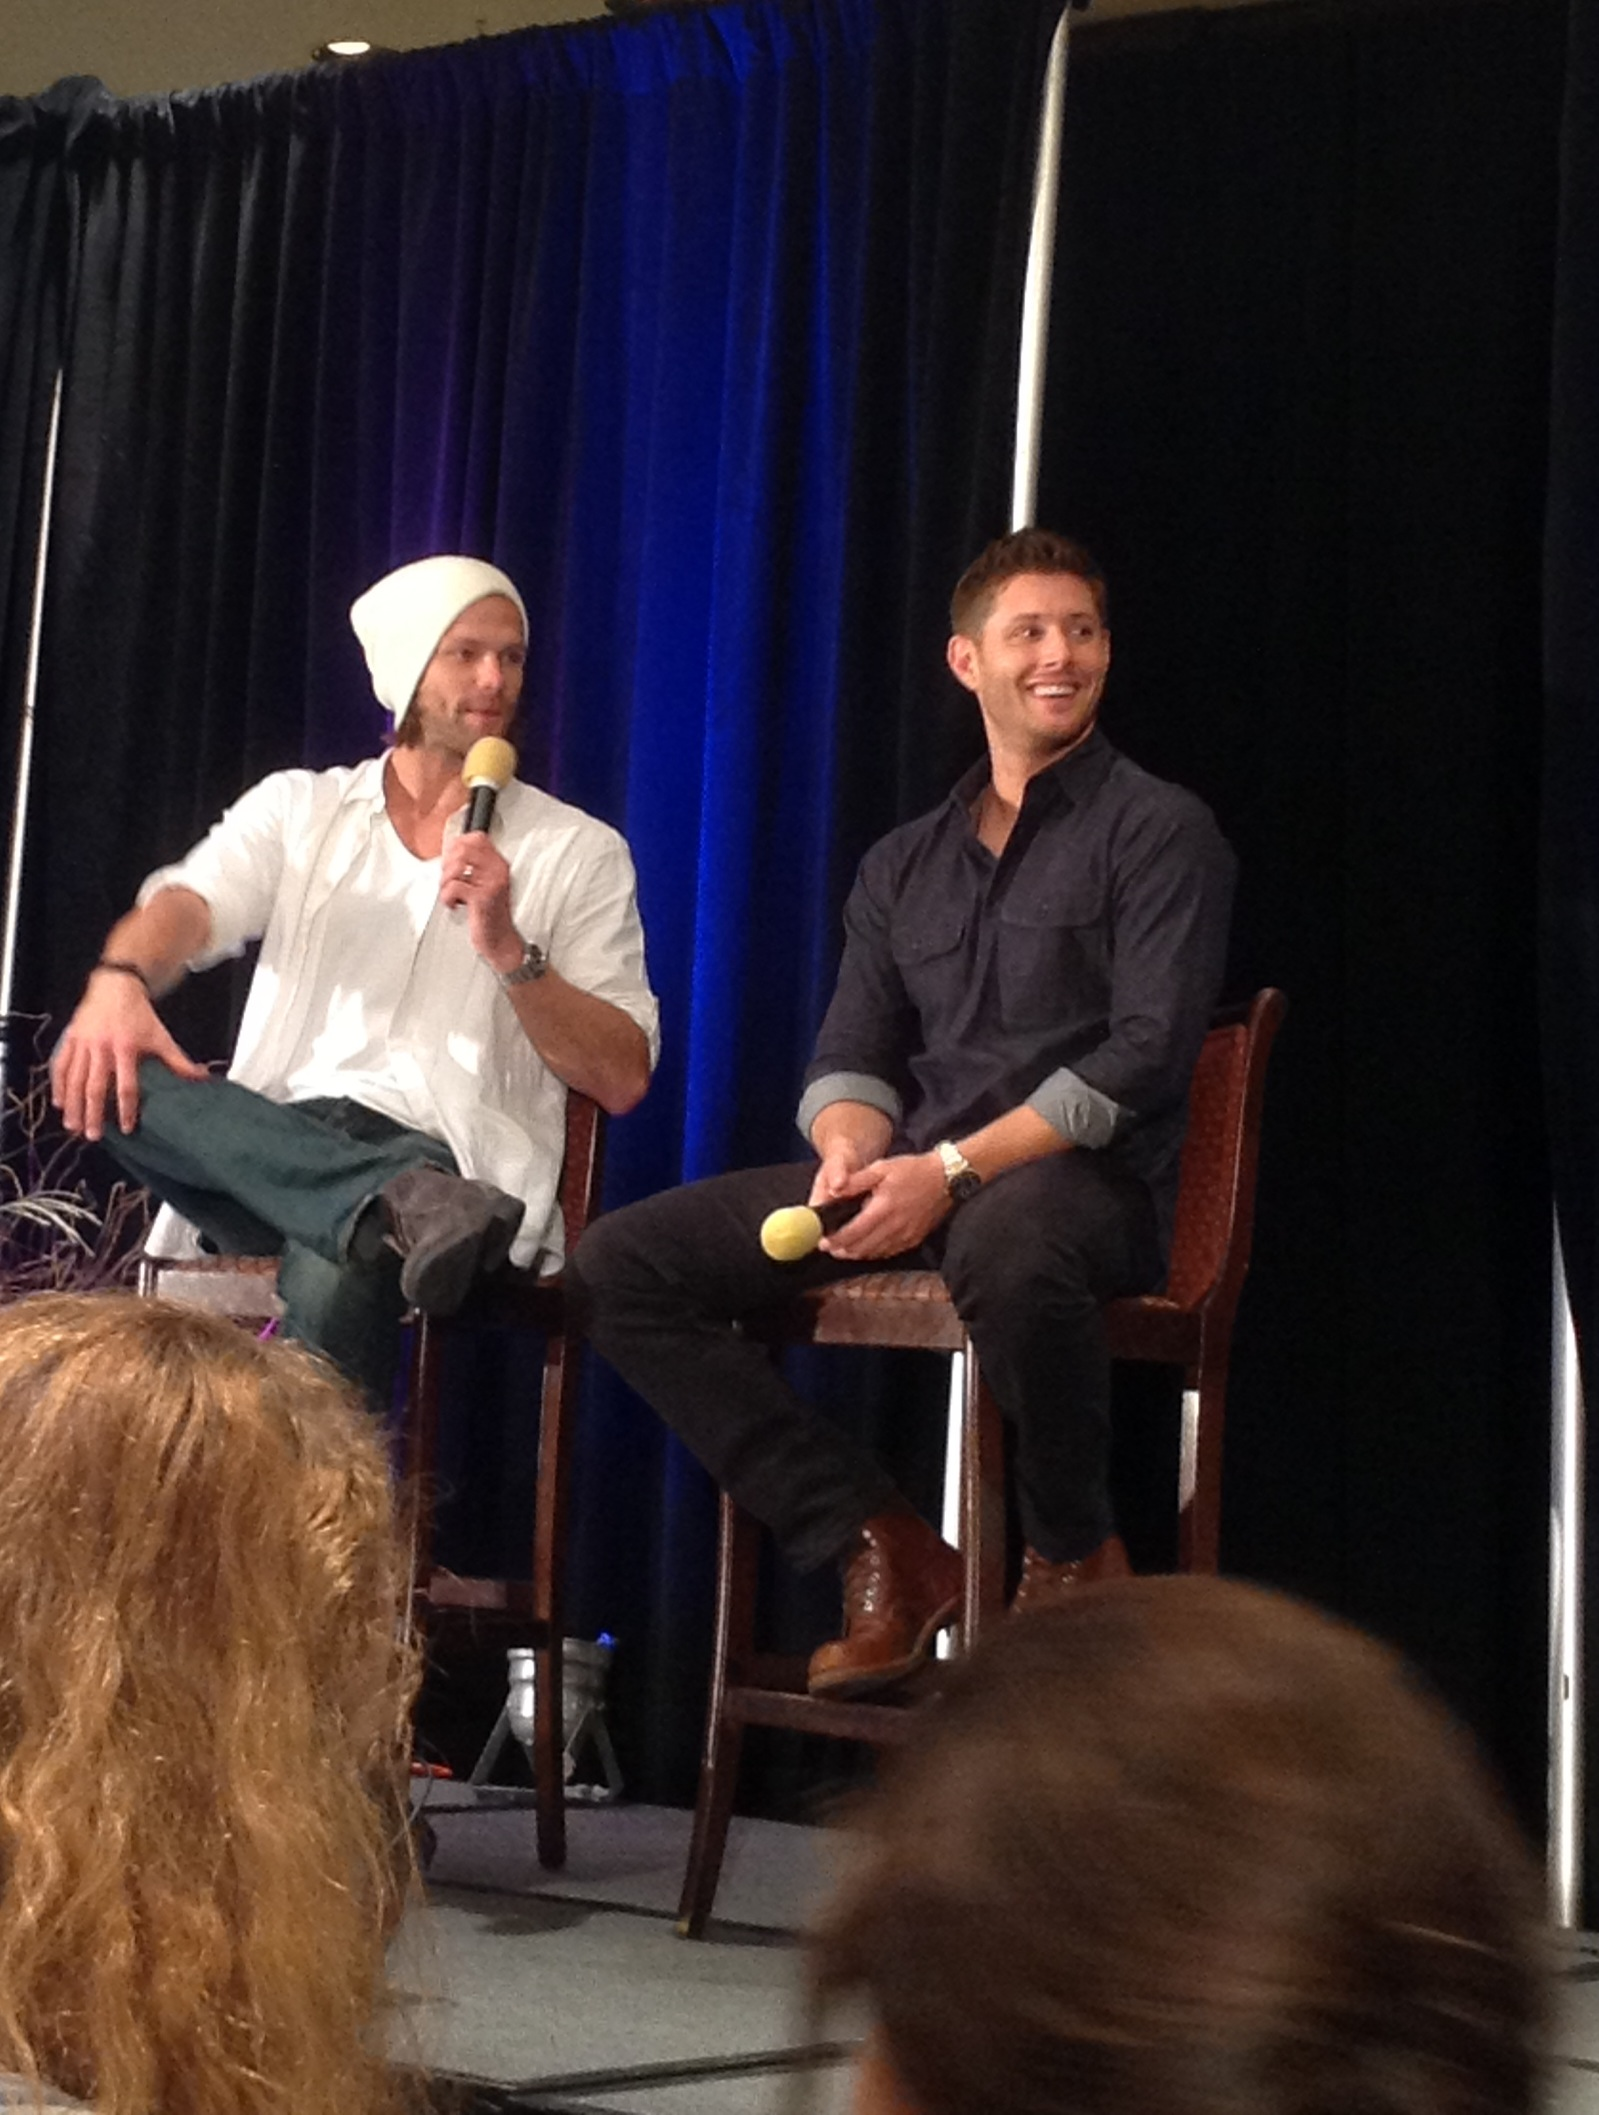 Jensen Ackles At Dallascon Meet And Greet Excerpts And That